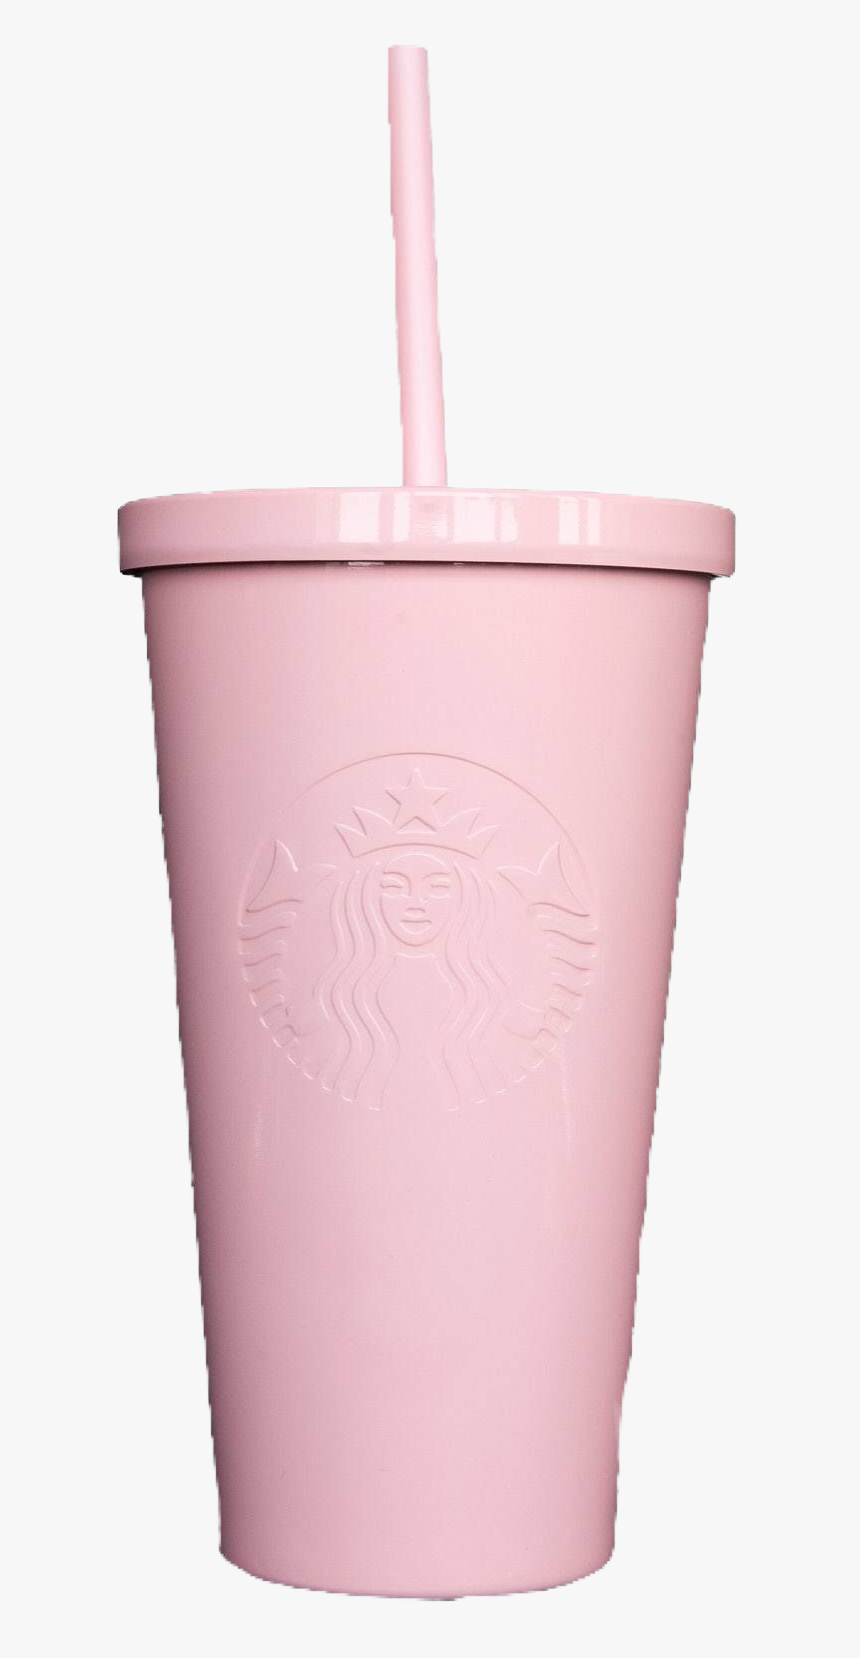 Starbucks Cold Cup Png Free Starbucks Cold Cup Png Transparent Images 159815 Pngio